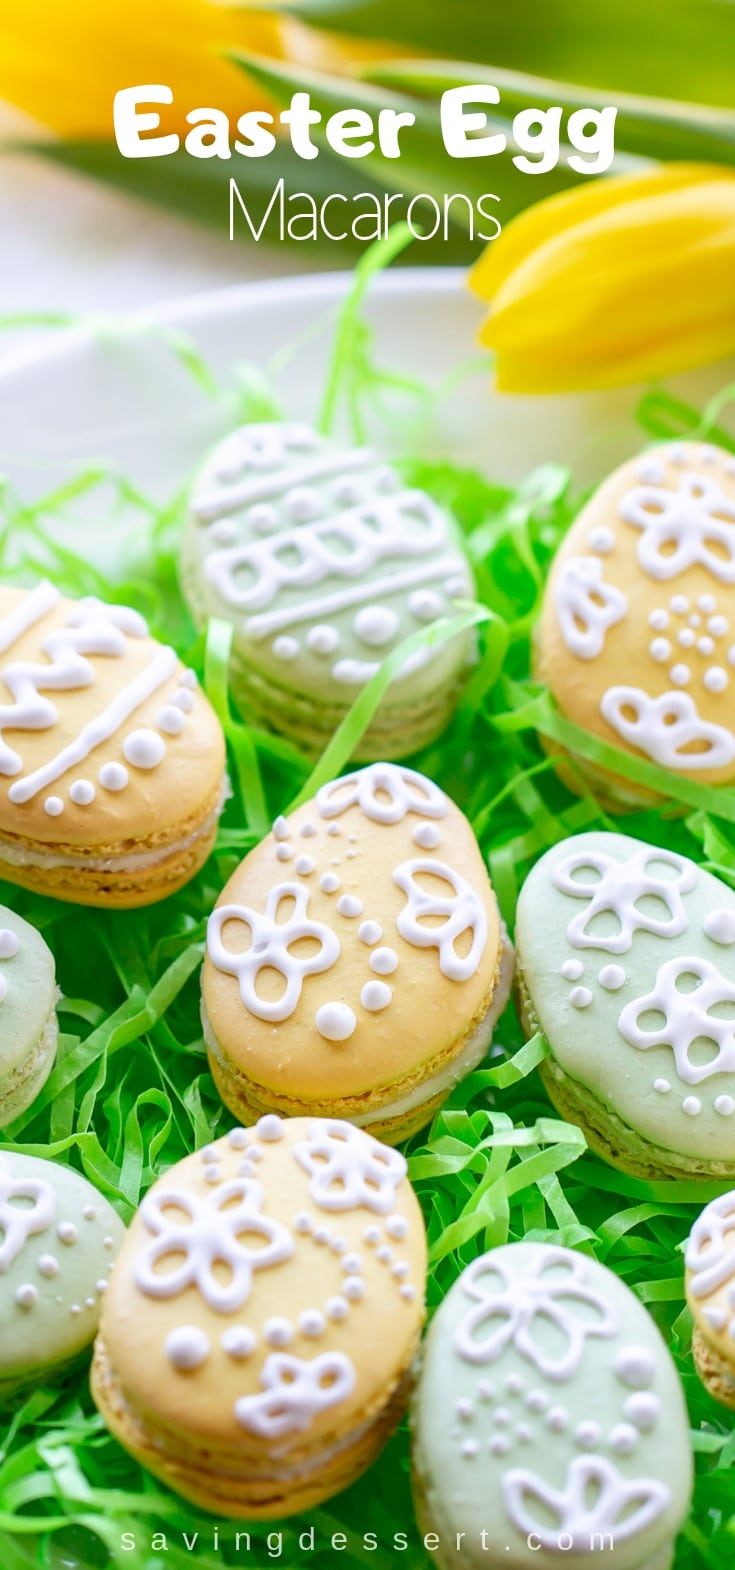 Easter Egg Macarons with White Chocolate-Mint Ganache #easter #macarons #eastereggmacarons #eastereggcookies #cookies #meringuecookie #macaron #holiday #decoratedmacarons